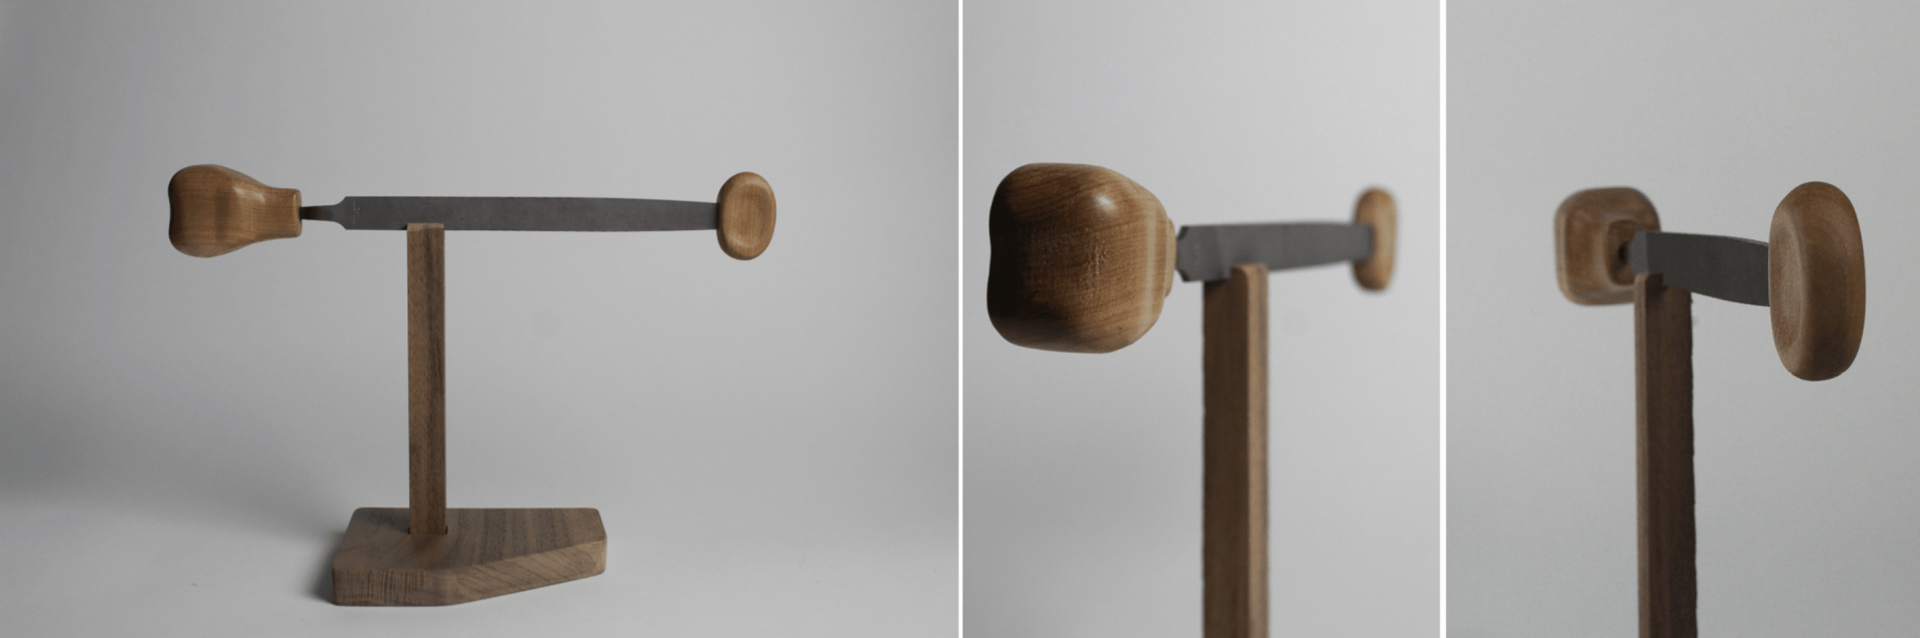 Three photos in different angles of a wooden tool.